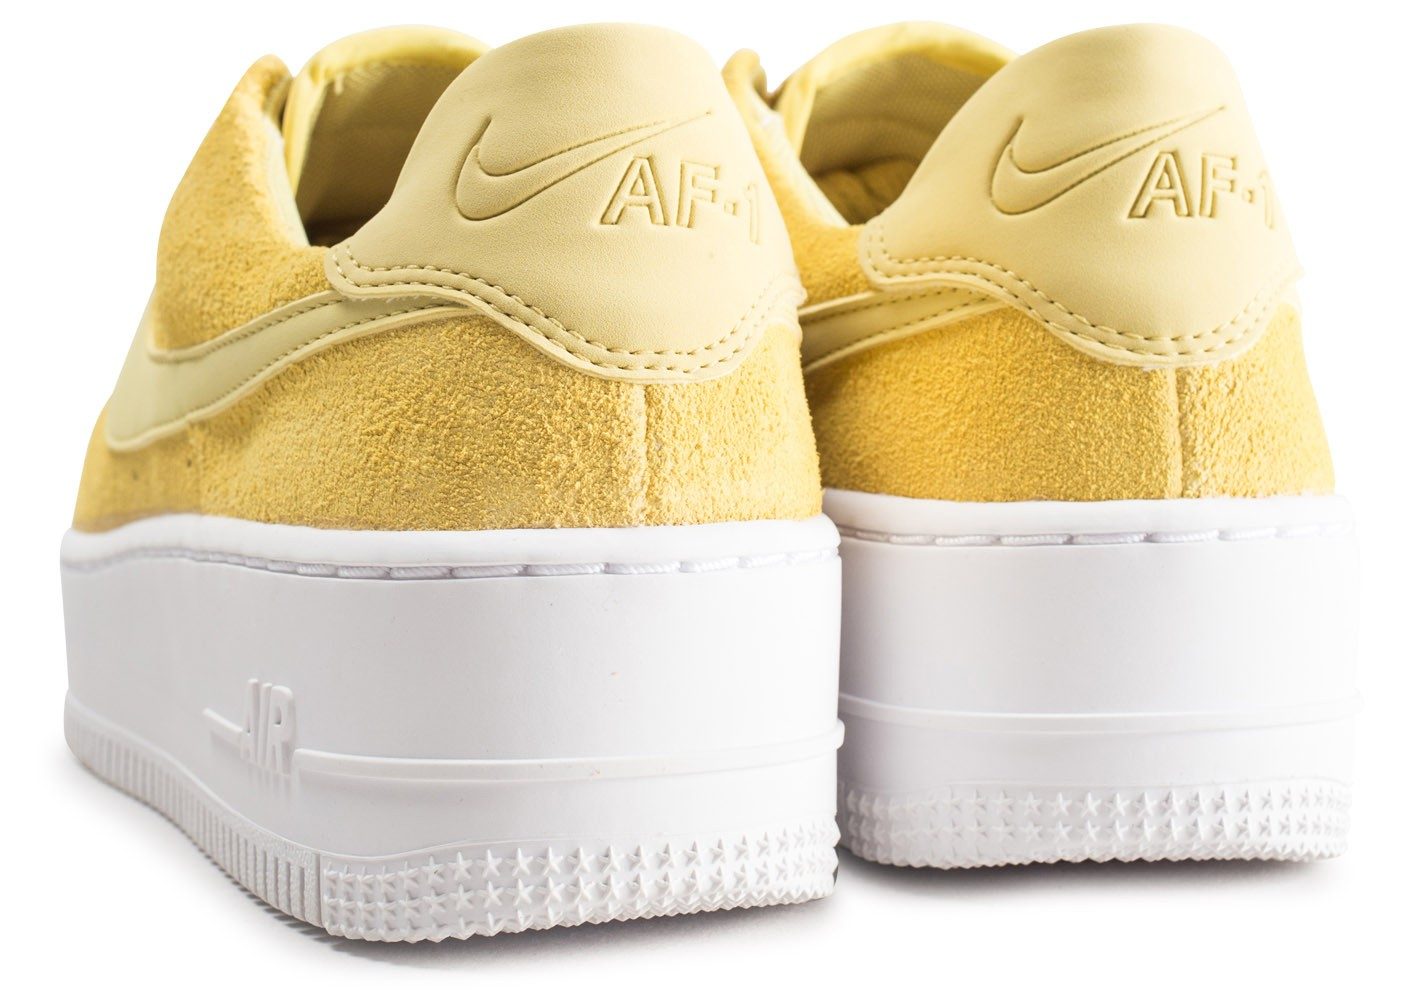 Nike Air Force 1 Sage Low jaune femme - Chaussures Baskets ...